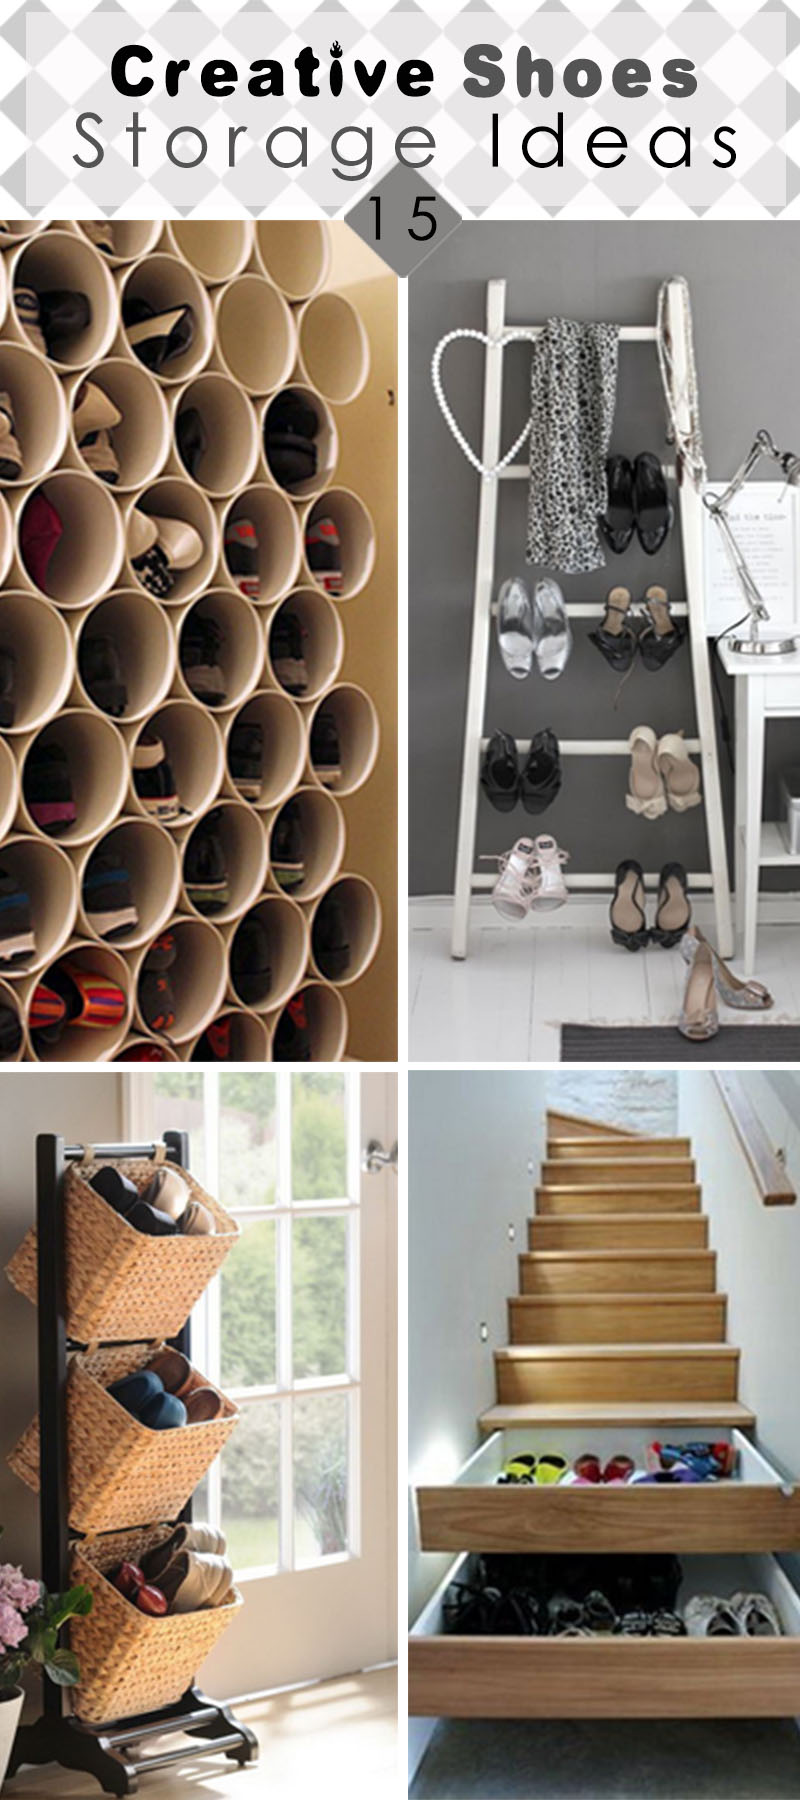 15 Creative Shoes Storage Ideas - Hative